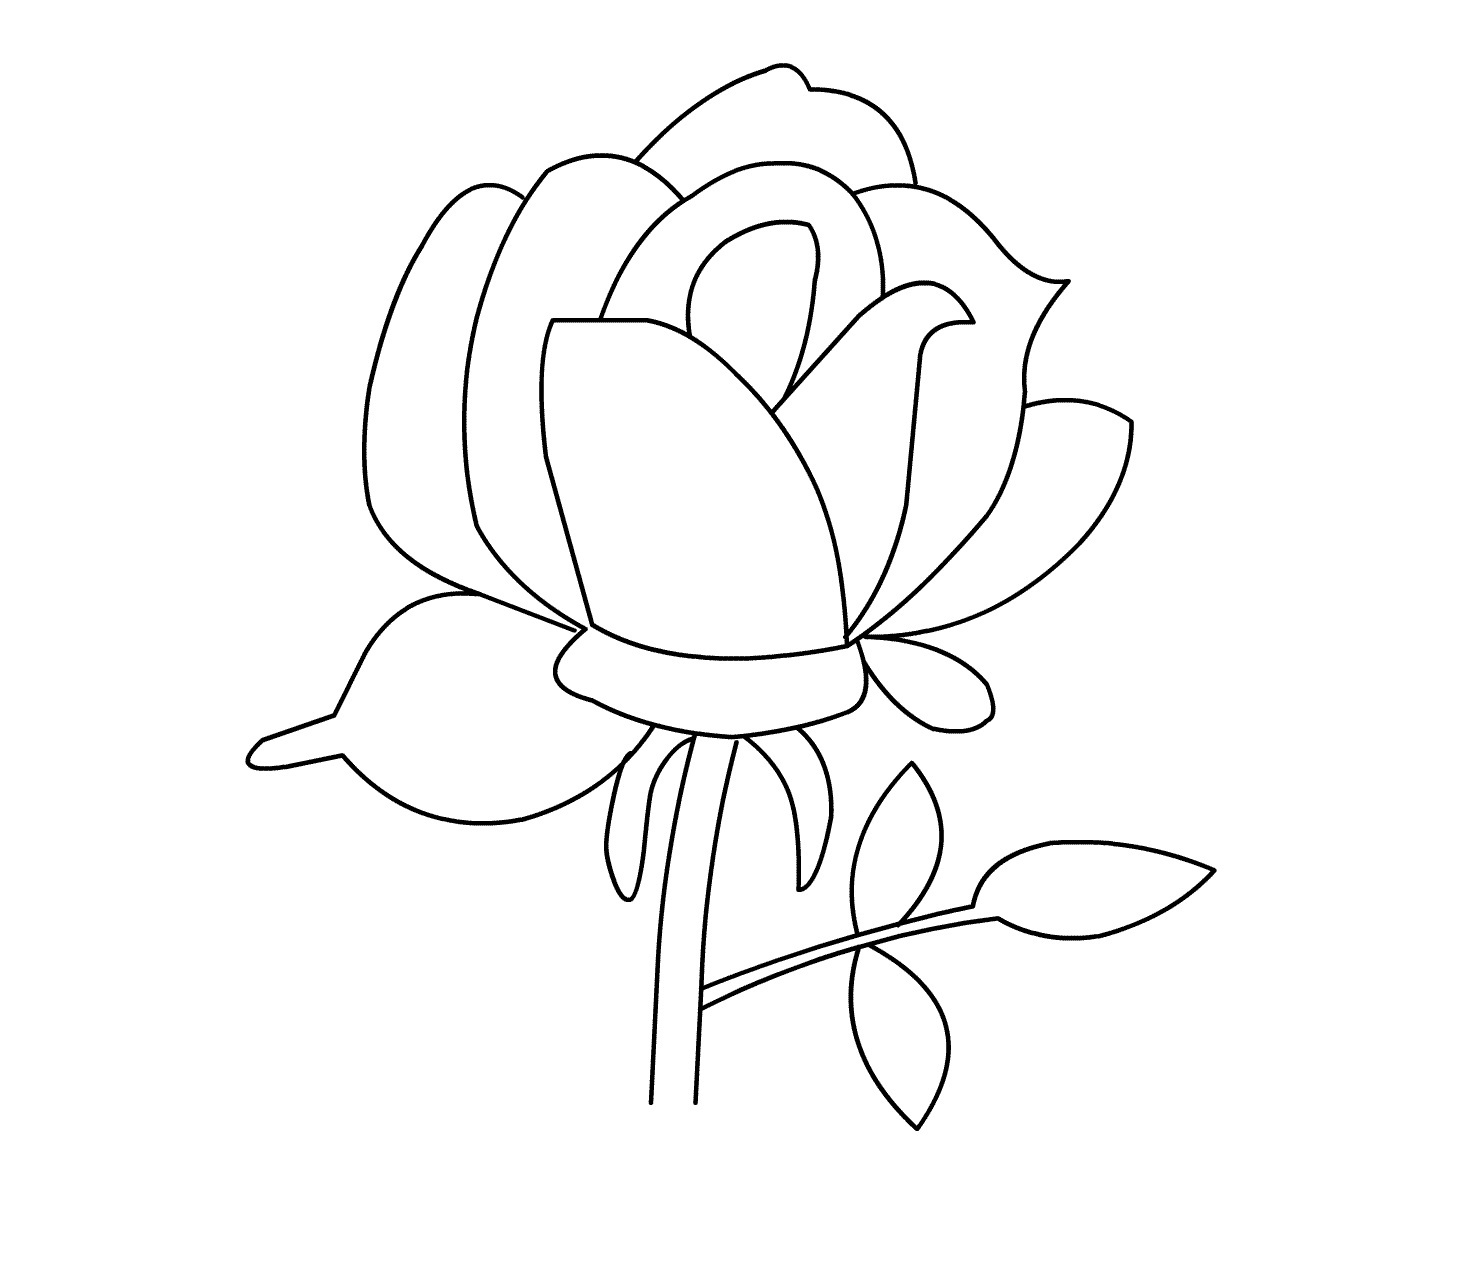 roses coloring pages printable free printable roses coloring pages for kids coloring roses printable pages